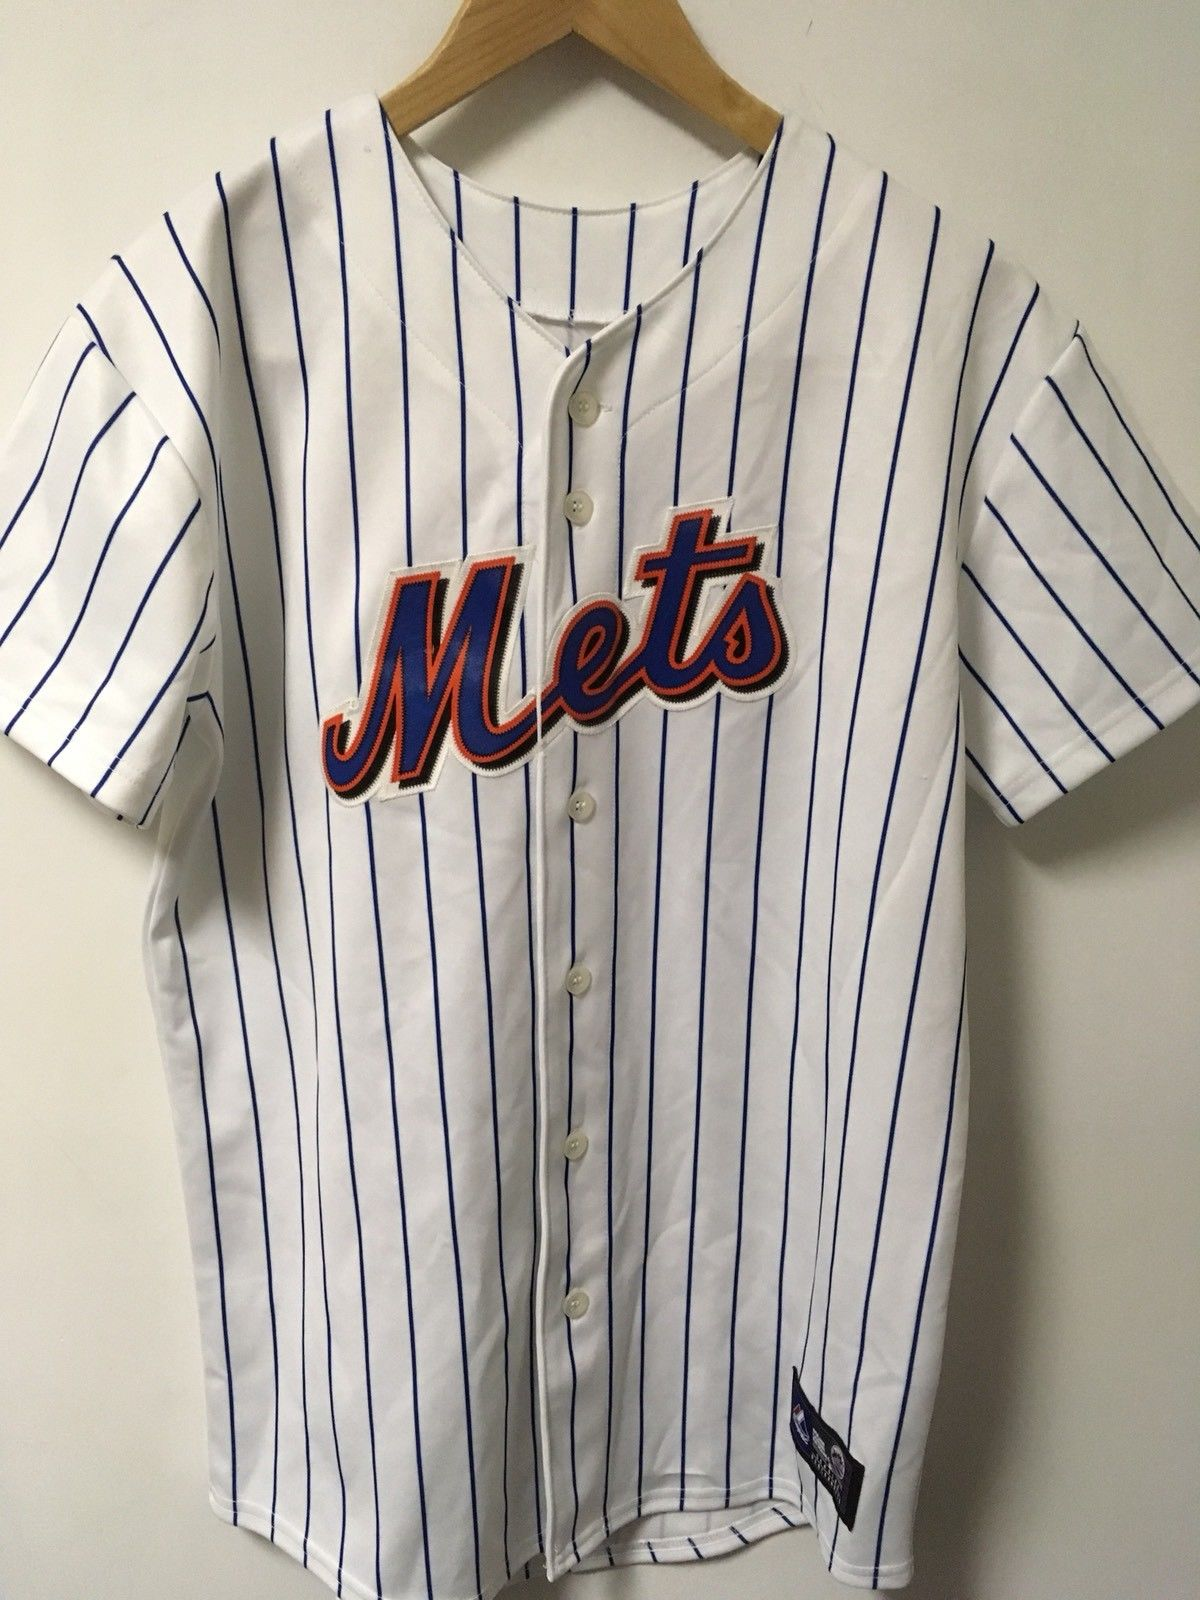 MLB New York Mets Johan Santana #57 Replica Jersey by Majestic Size Youth Large